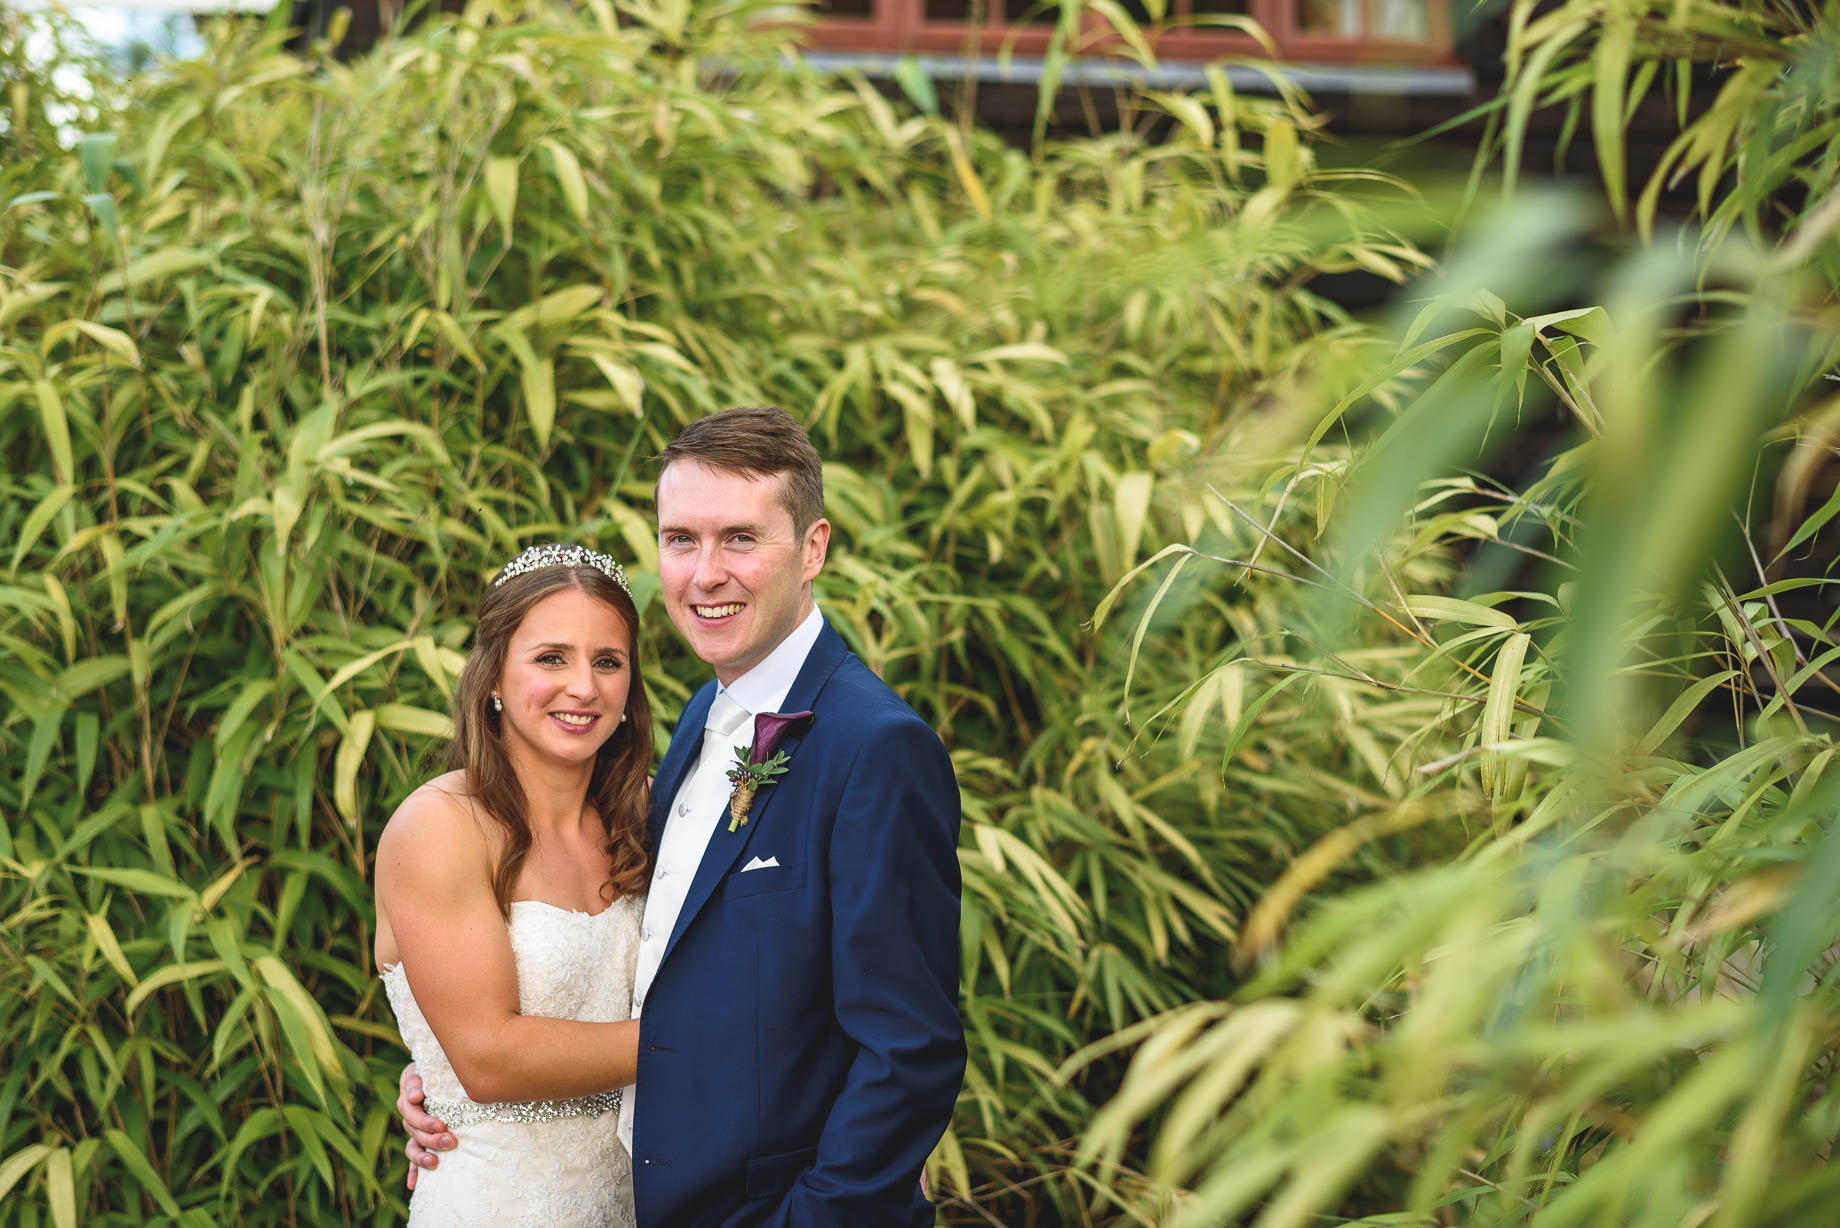 Gate Street Barn wedding photography - Guy Collier - Claire and Andy (108 of 192)